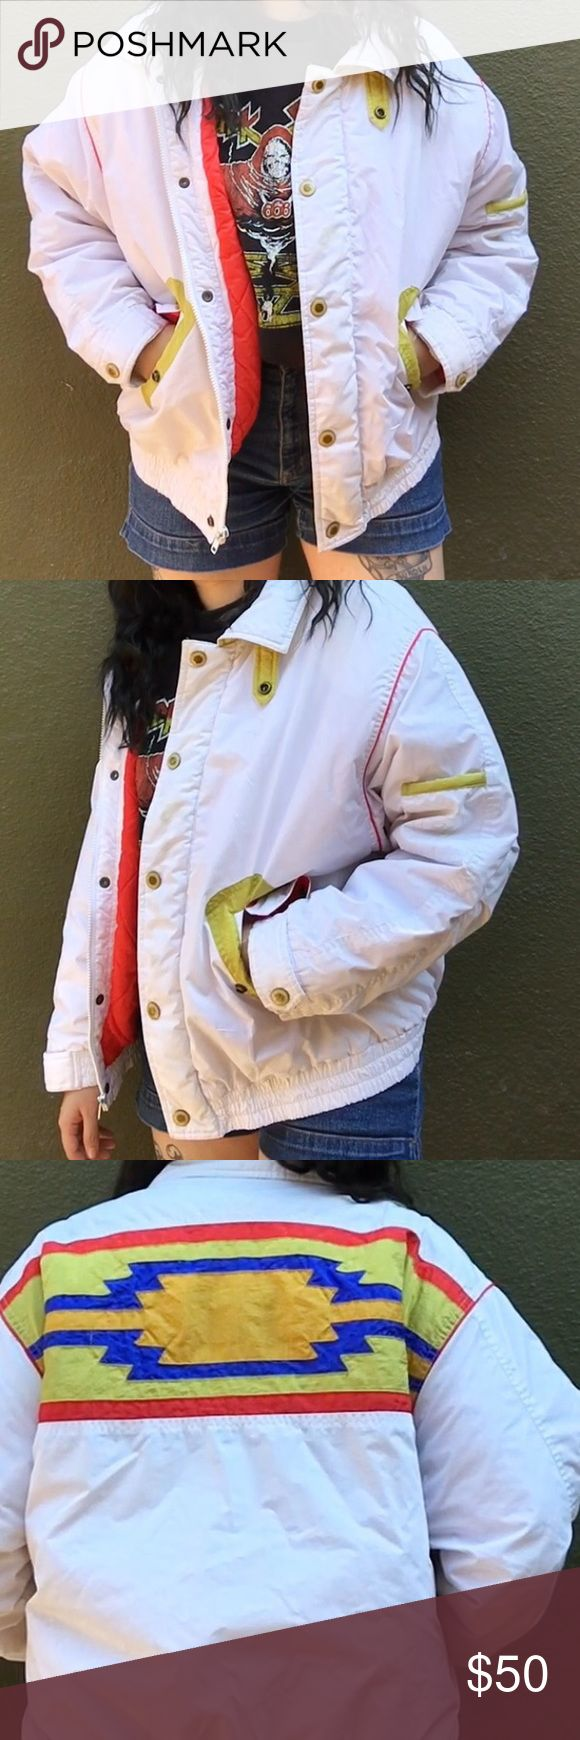 80s Vintage Aztec Bomber Size medium - I am an XS for reference. Back has a really cool and unique Aztec design on the back. Fully lined and perfect for the upcoming fall and winter season. Dated 80s- 90s era. Some signs of wear along collar but overall in perfect condition in comparison to age. Jackets & Coats Puffers